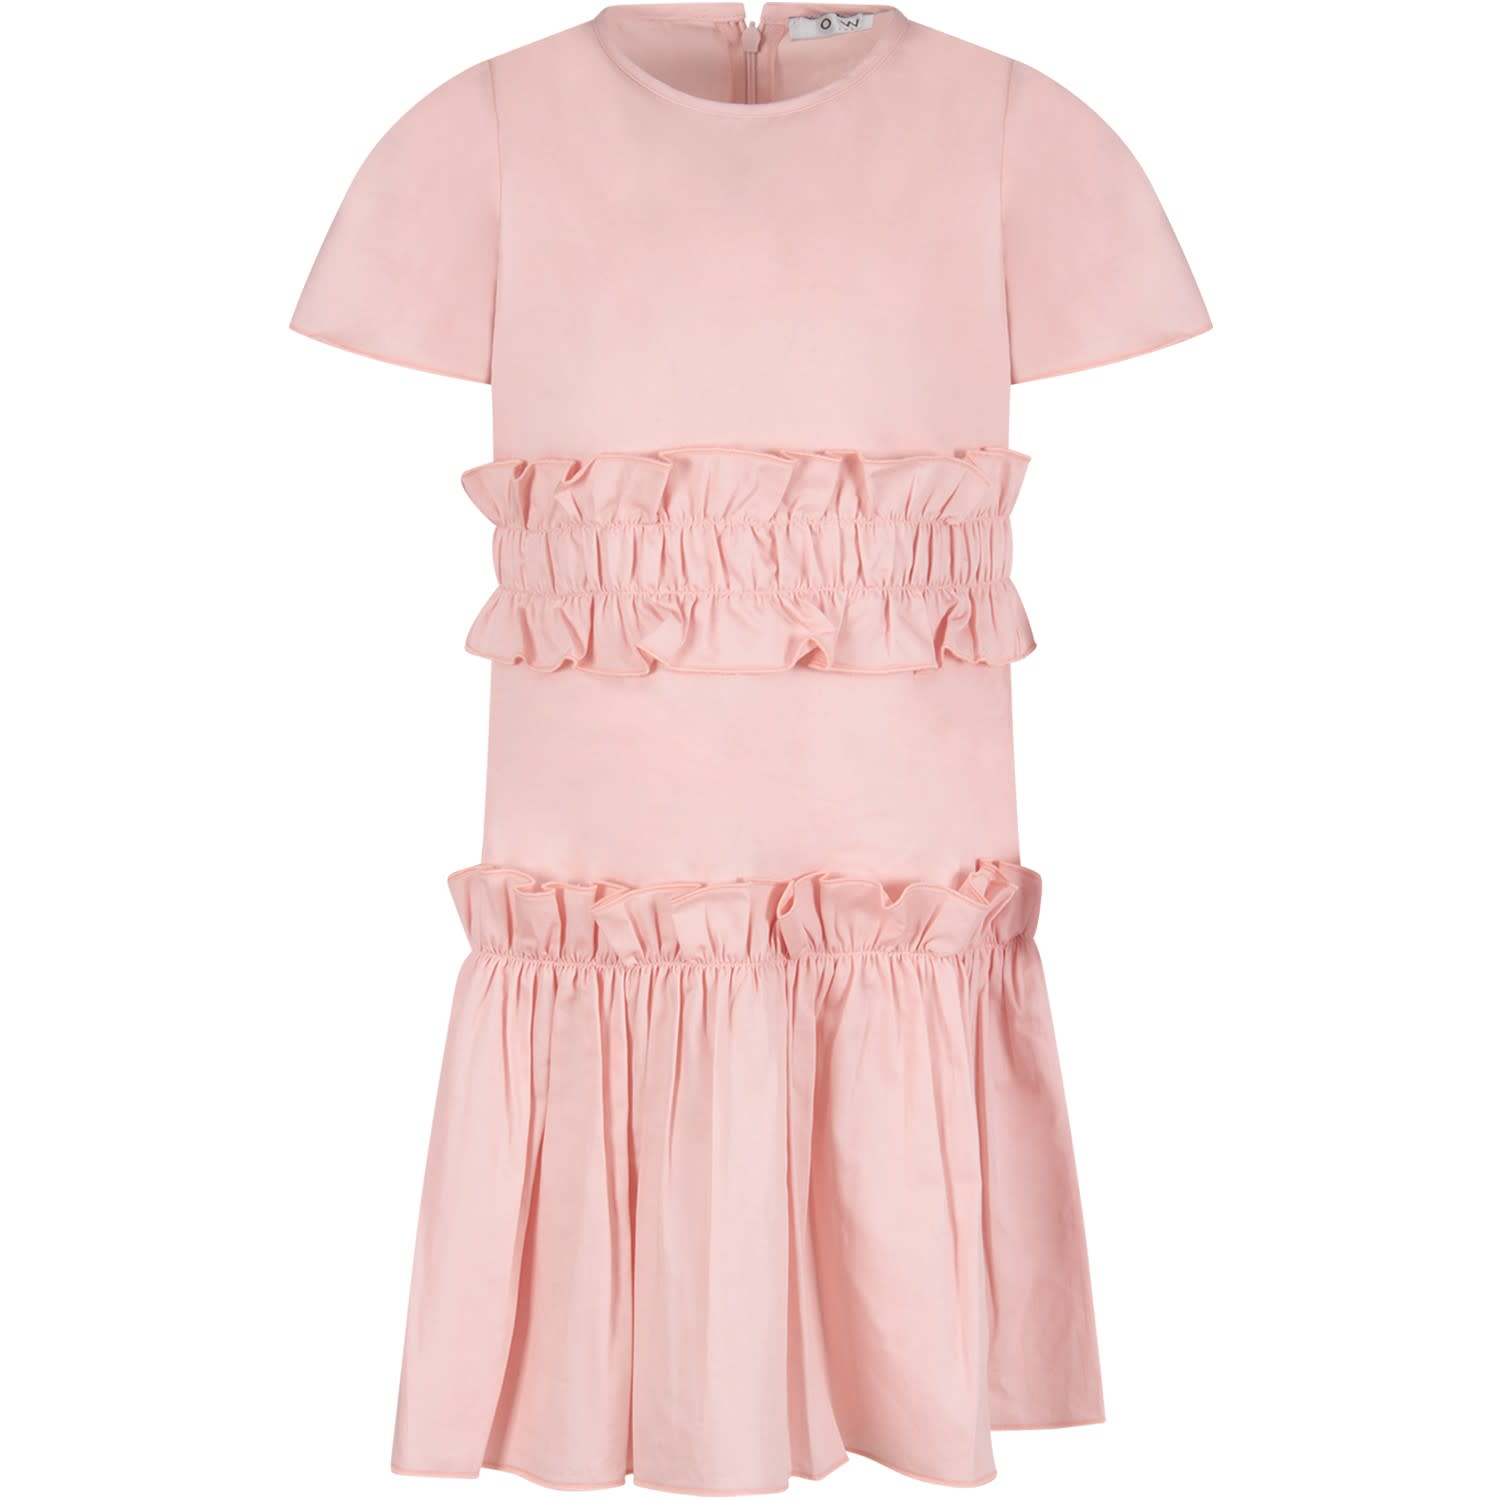 Buy Owa Yurika Pink agnes Girl Dress online, shop Owa Yurika with free shipping